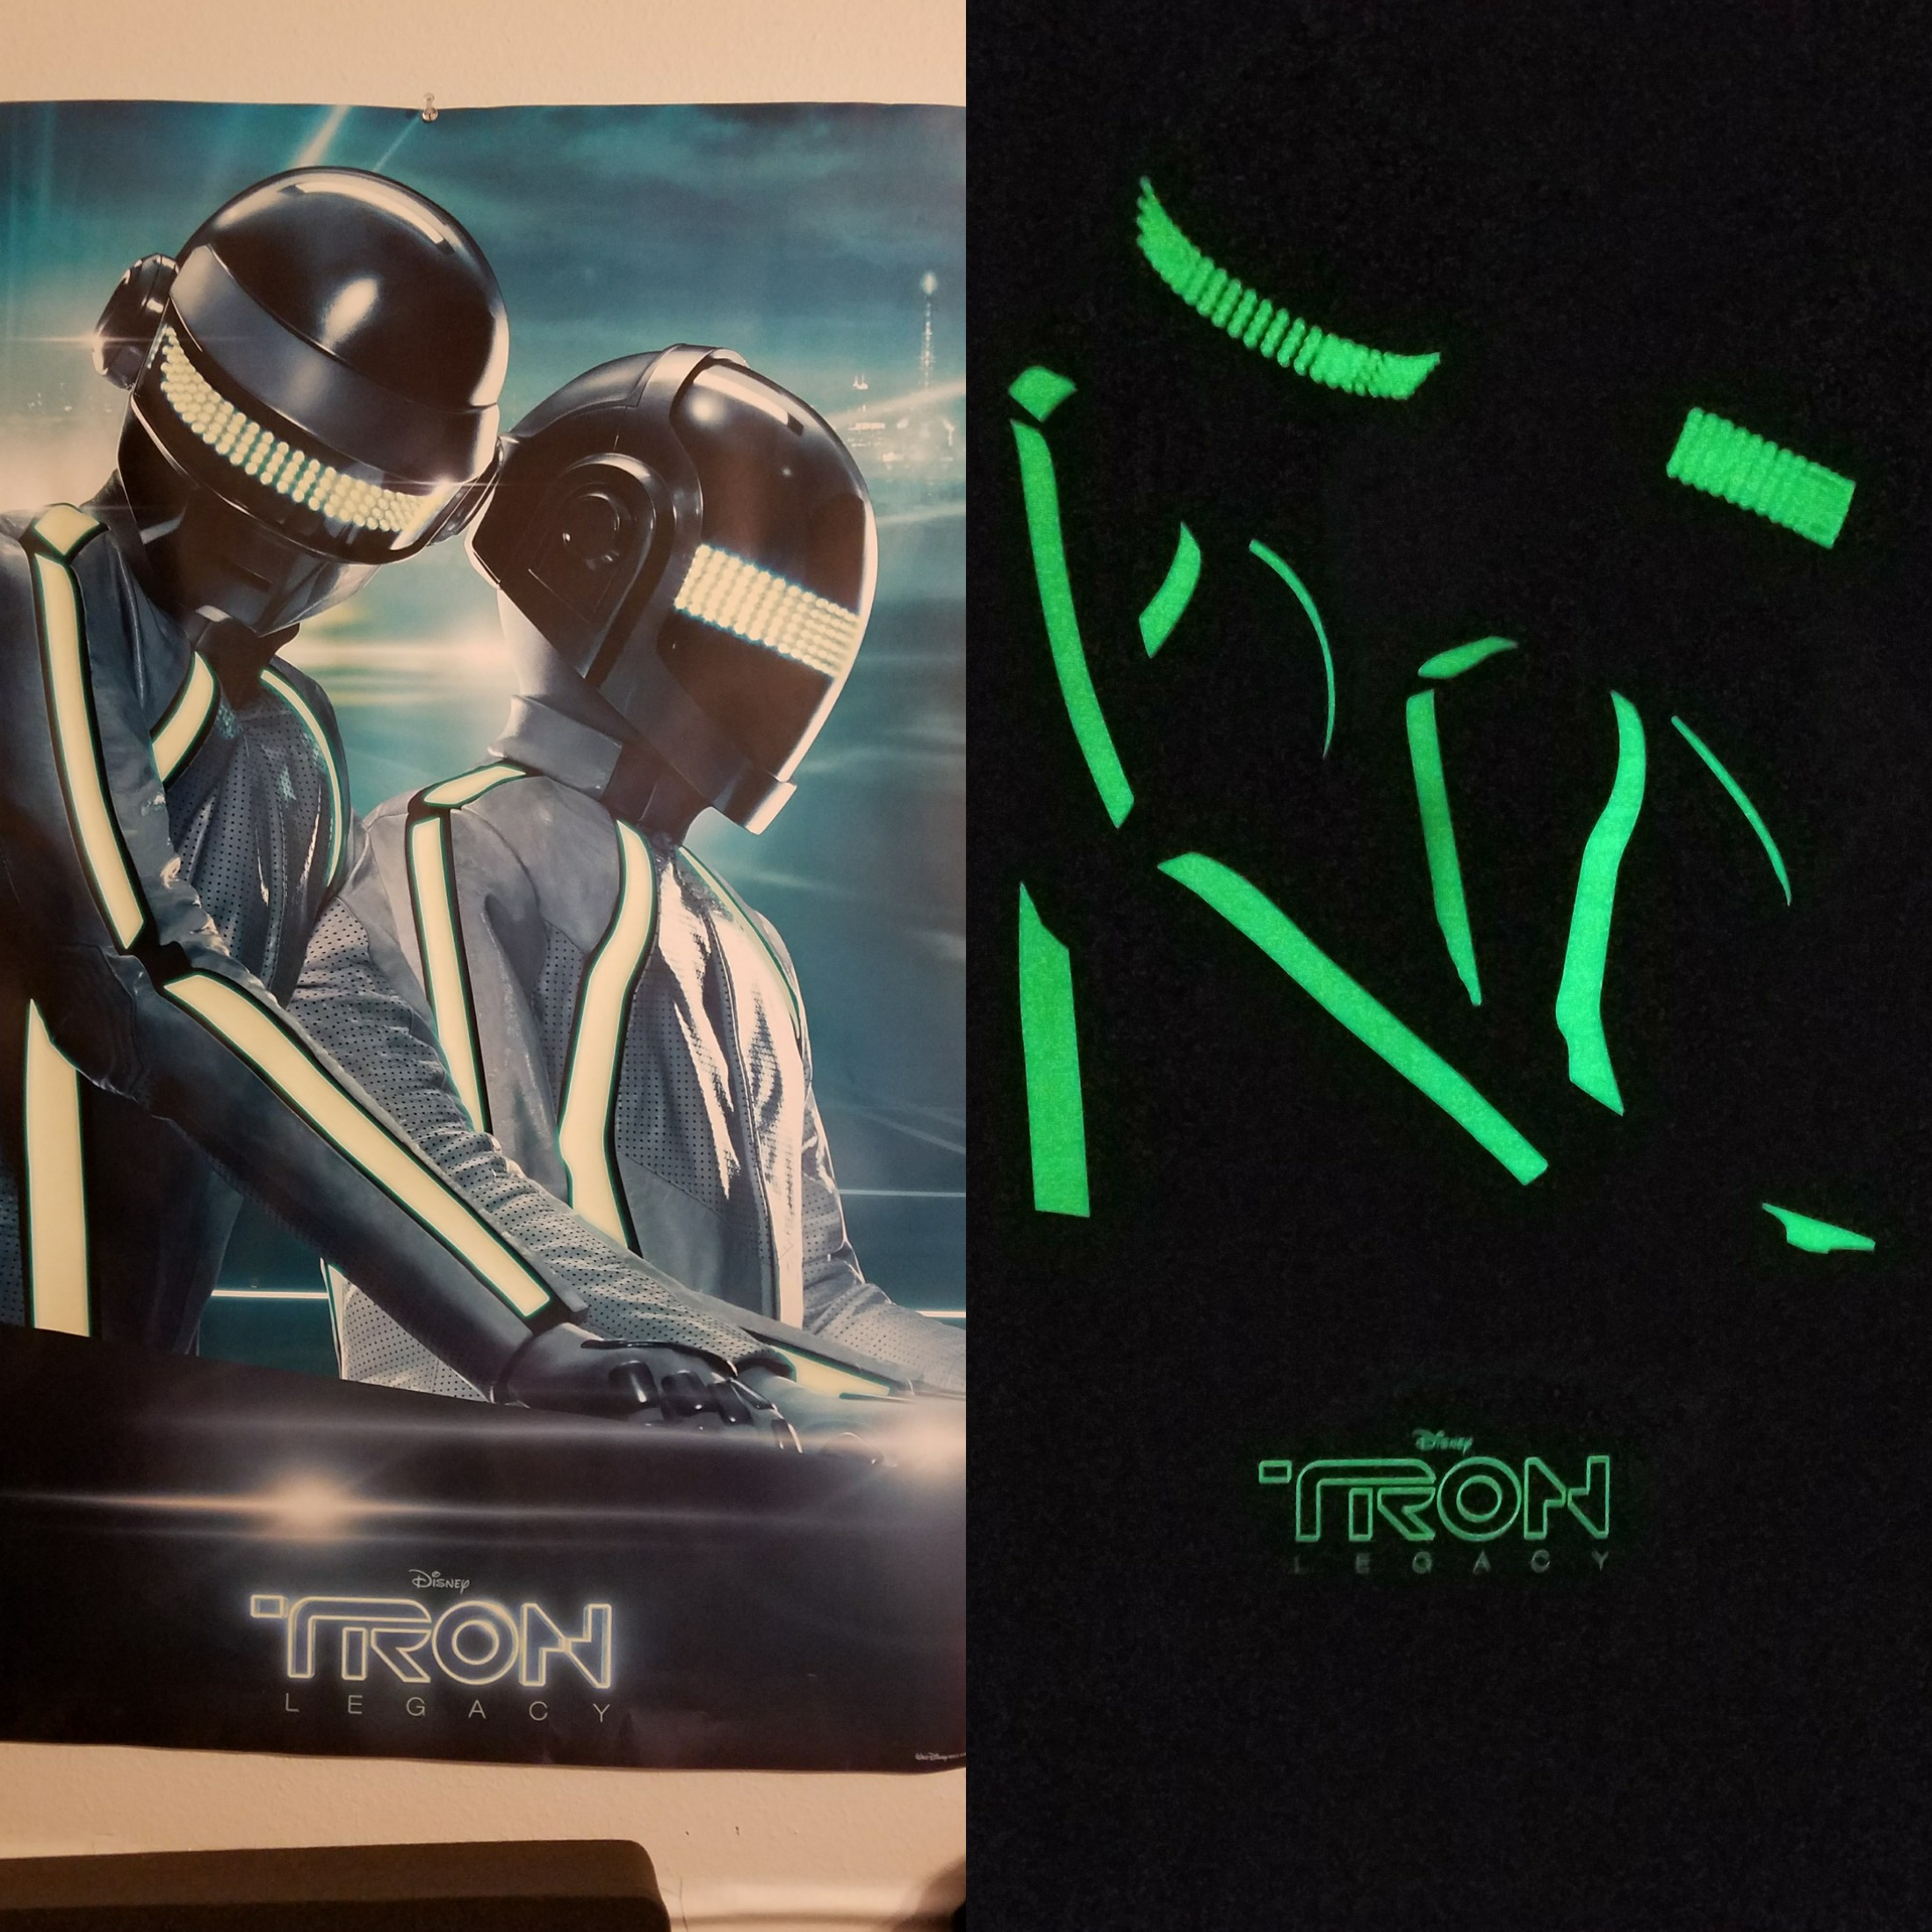 my daft punk tron poster from when the